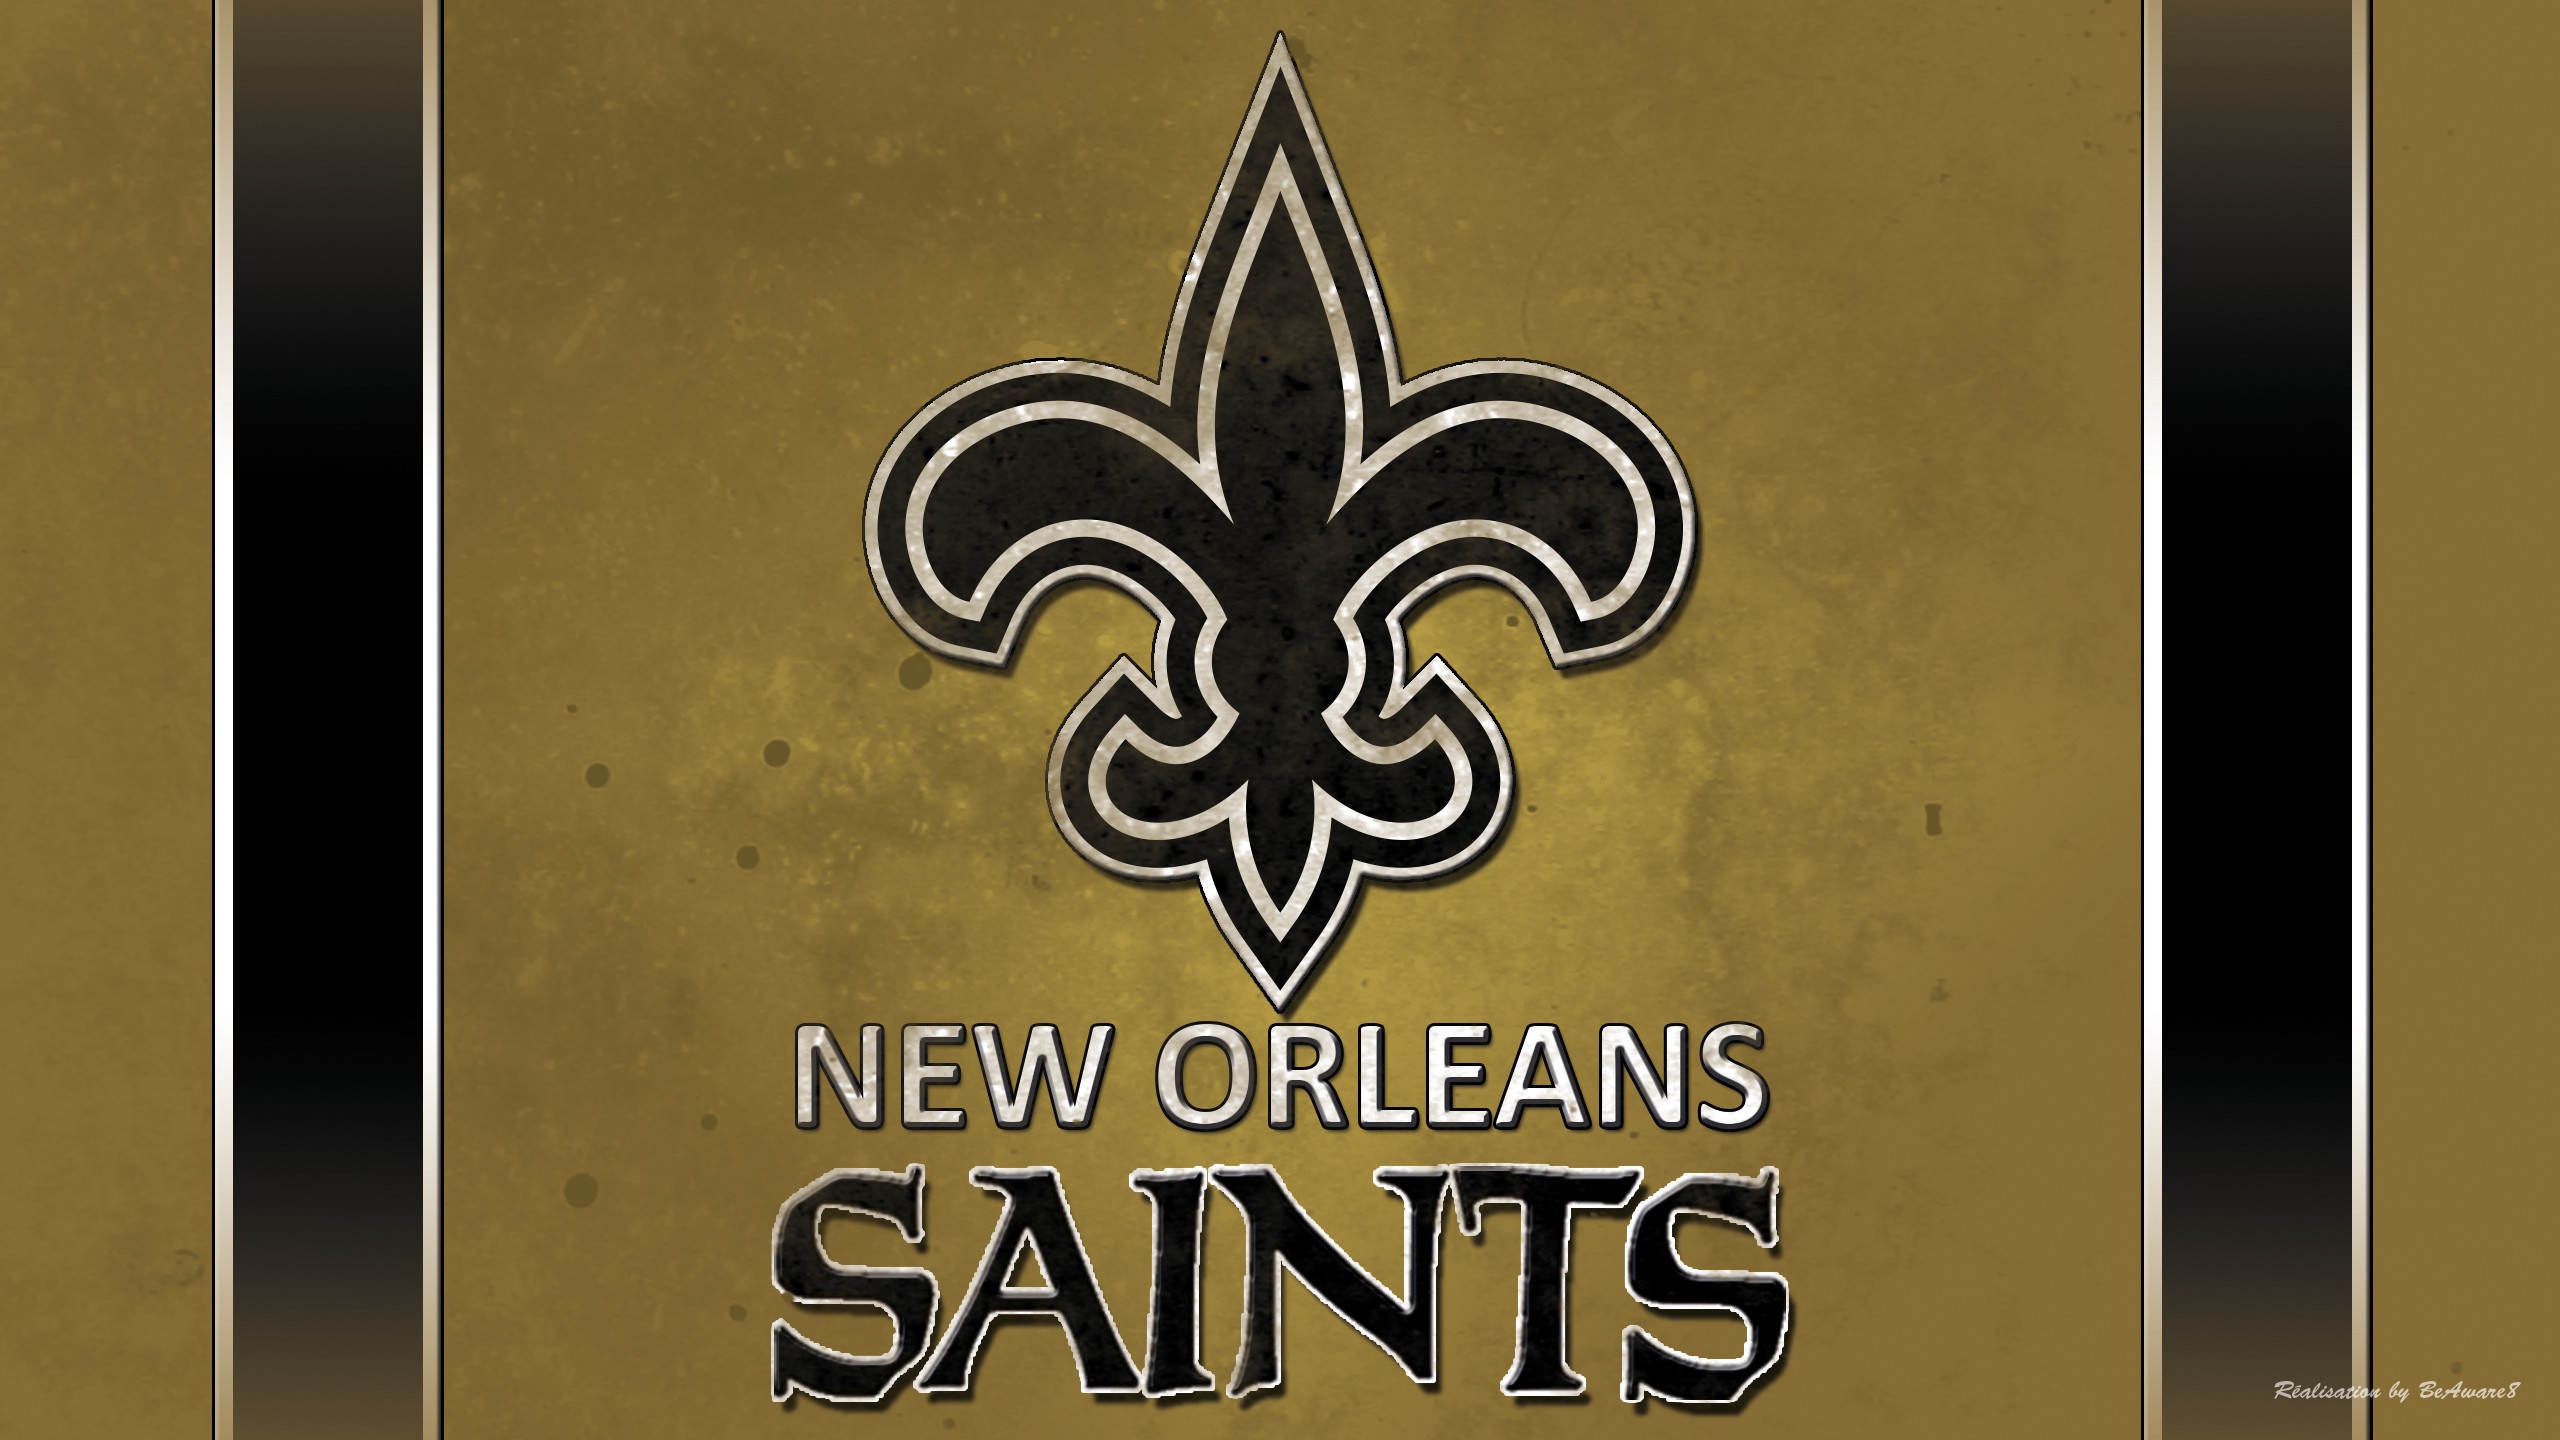 New Orleans Saints Hd Wallpaper 71 Images